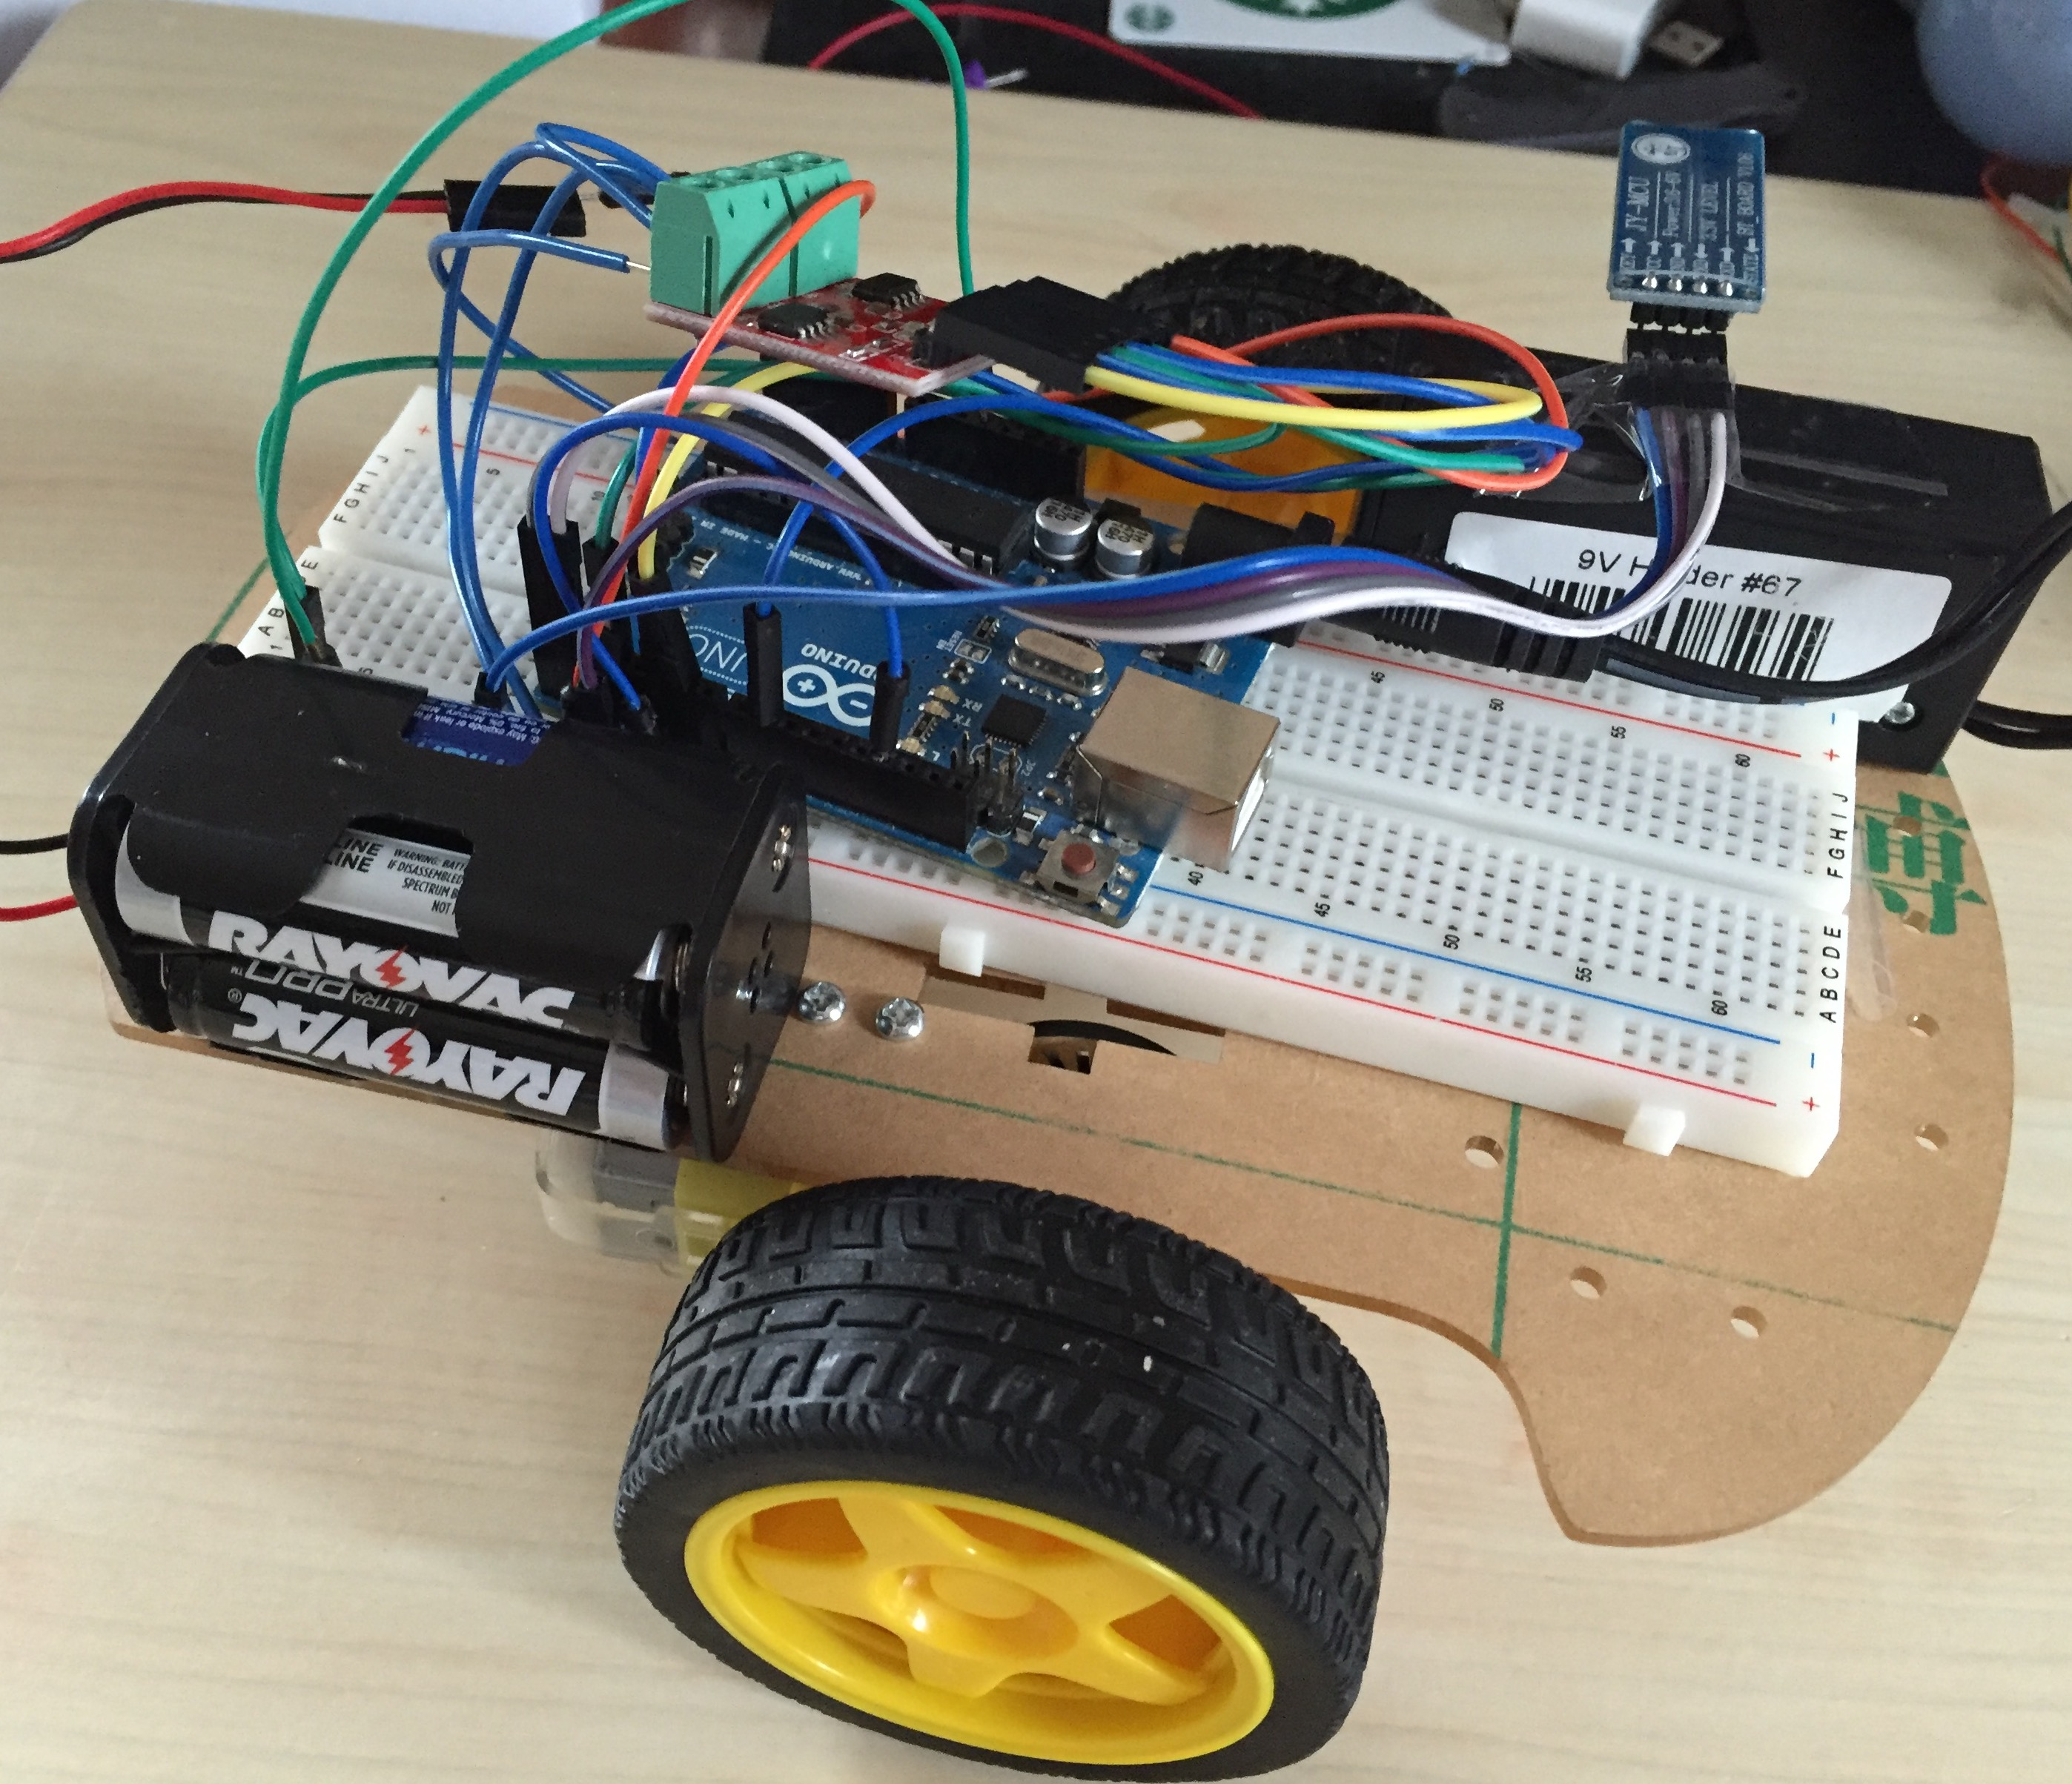 Do you want to learn Arduino?